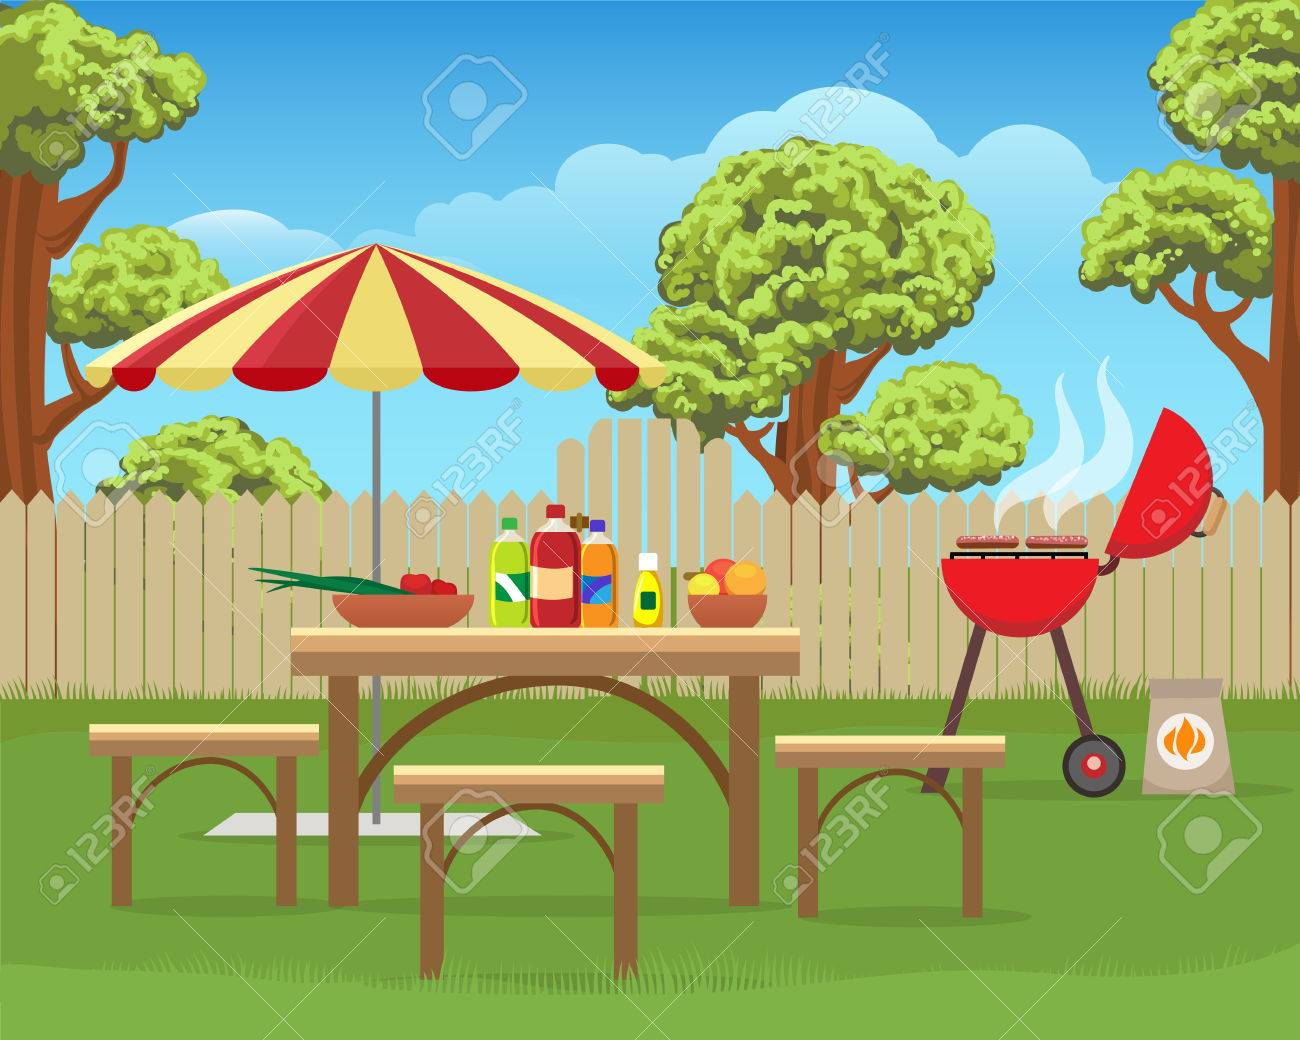 summer backyard fun bbq or grilling barbecue party cartoon vector